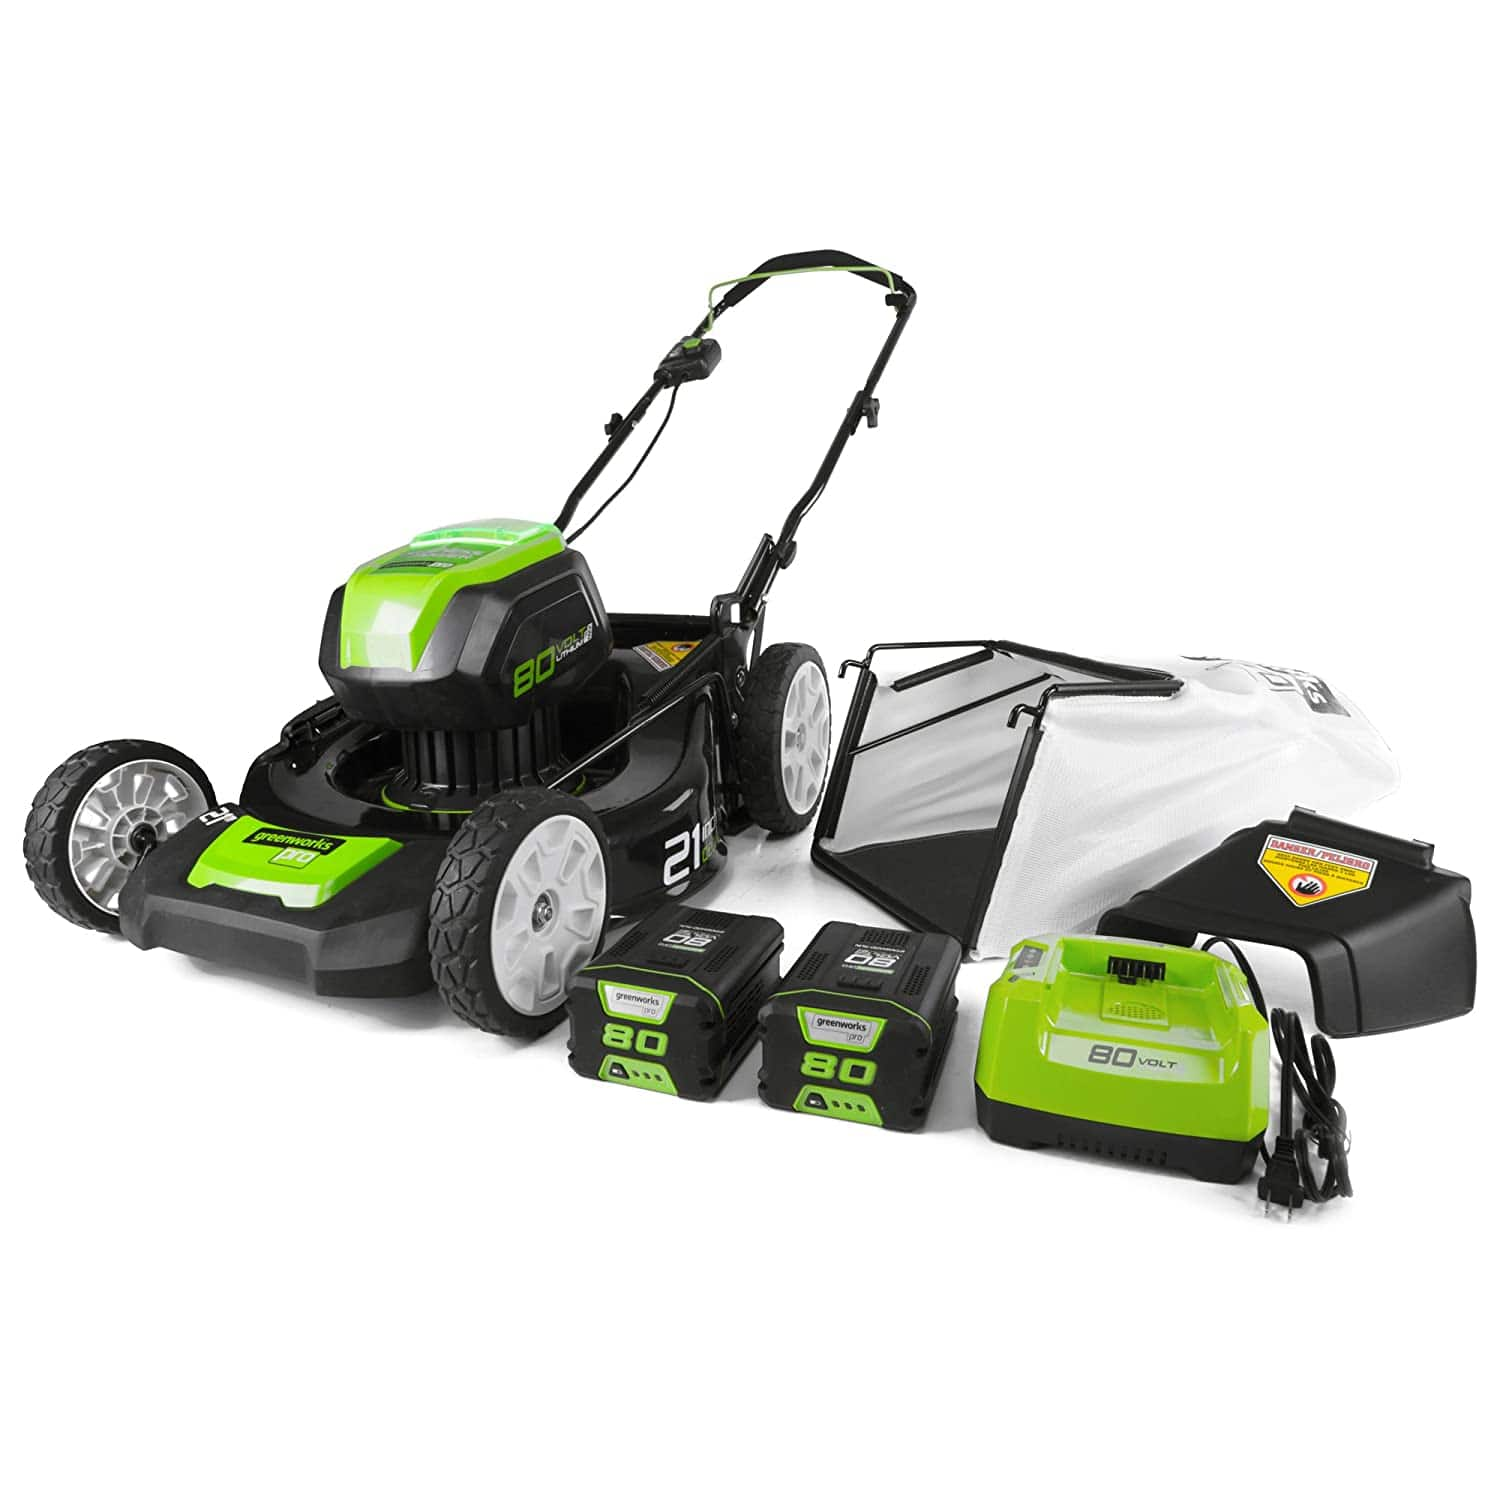 Greenworks GLM801601 21-Inch 80V Cordless Push Lawn Mower, includes two 2Ah Batteries and Charger - $379